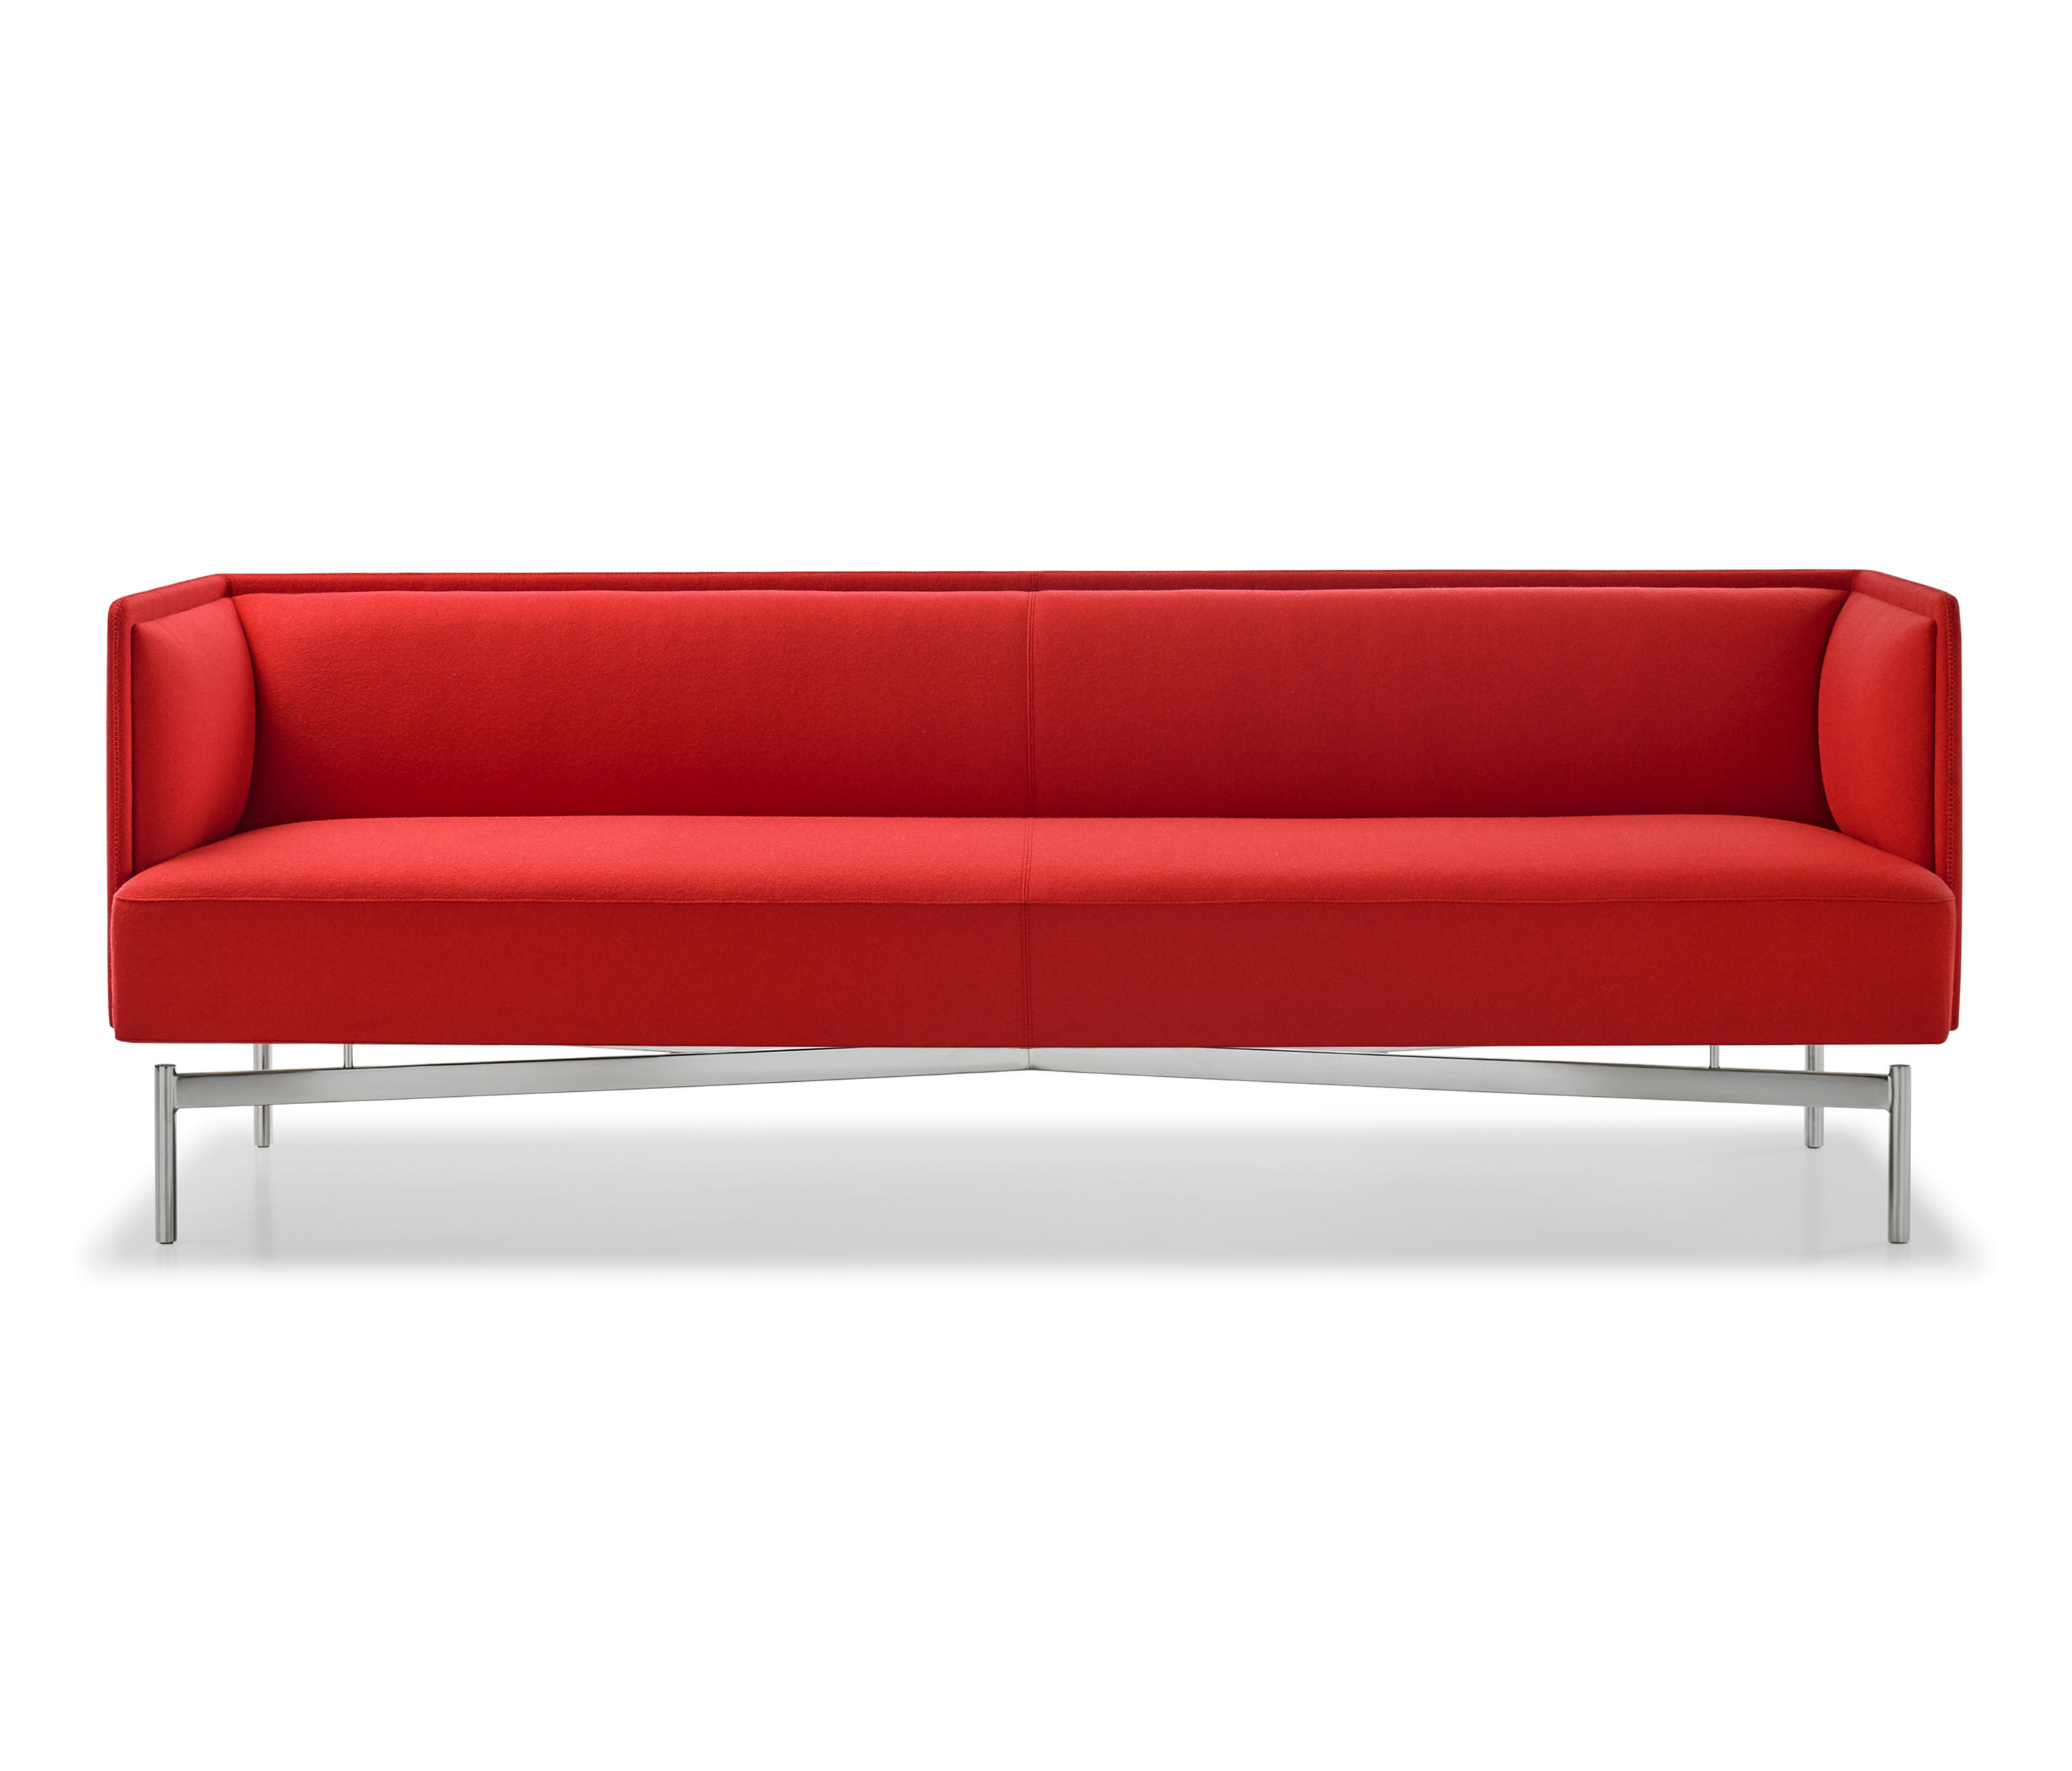 Finale Sofa By Bernhardt Design | Sofas